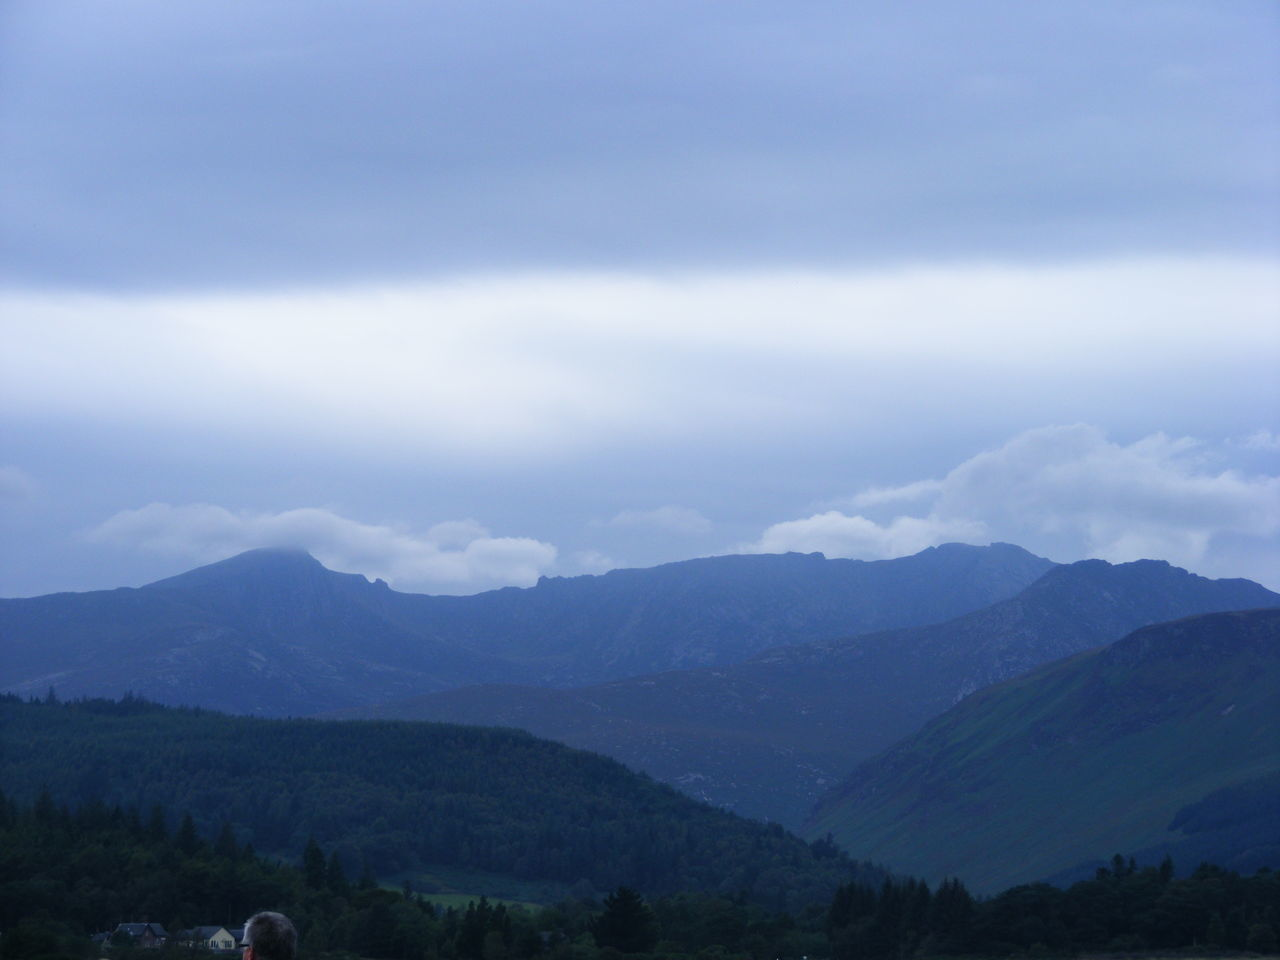 mountain, nature, beauty in nature, sky, landscape, outdoors, peak, no people, scenery, range, day